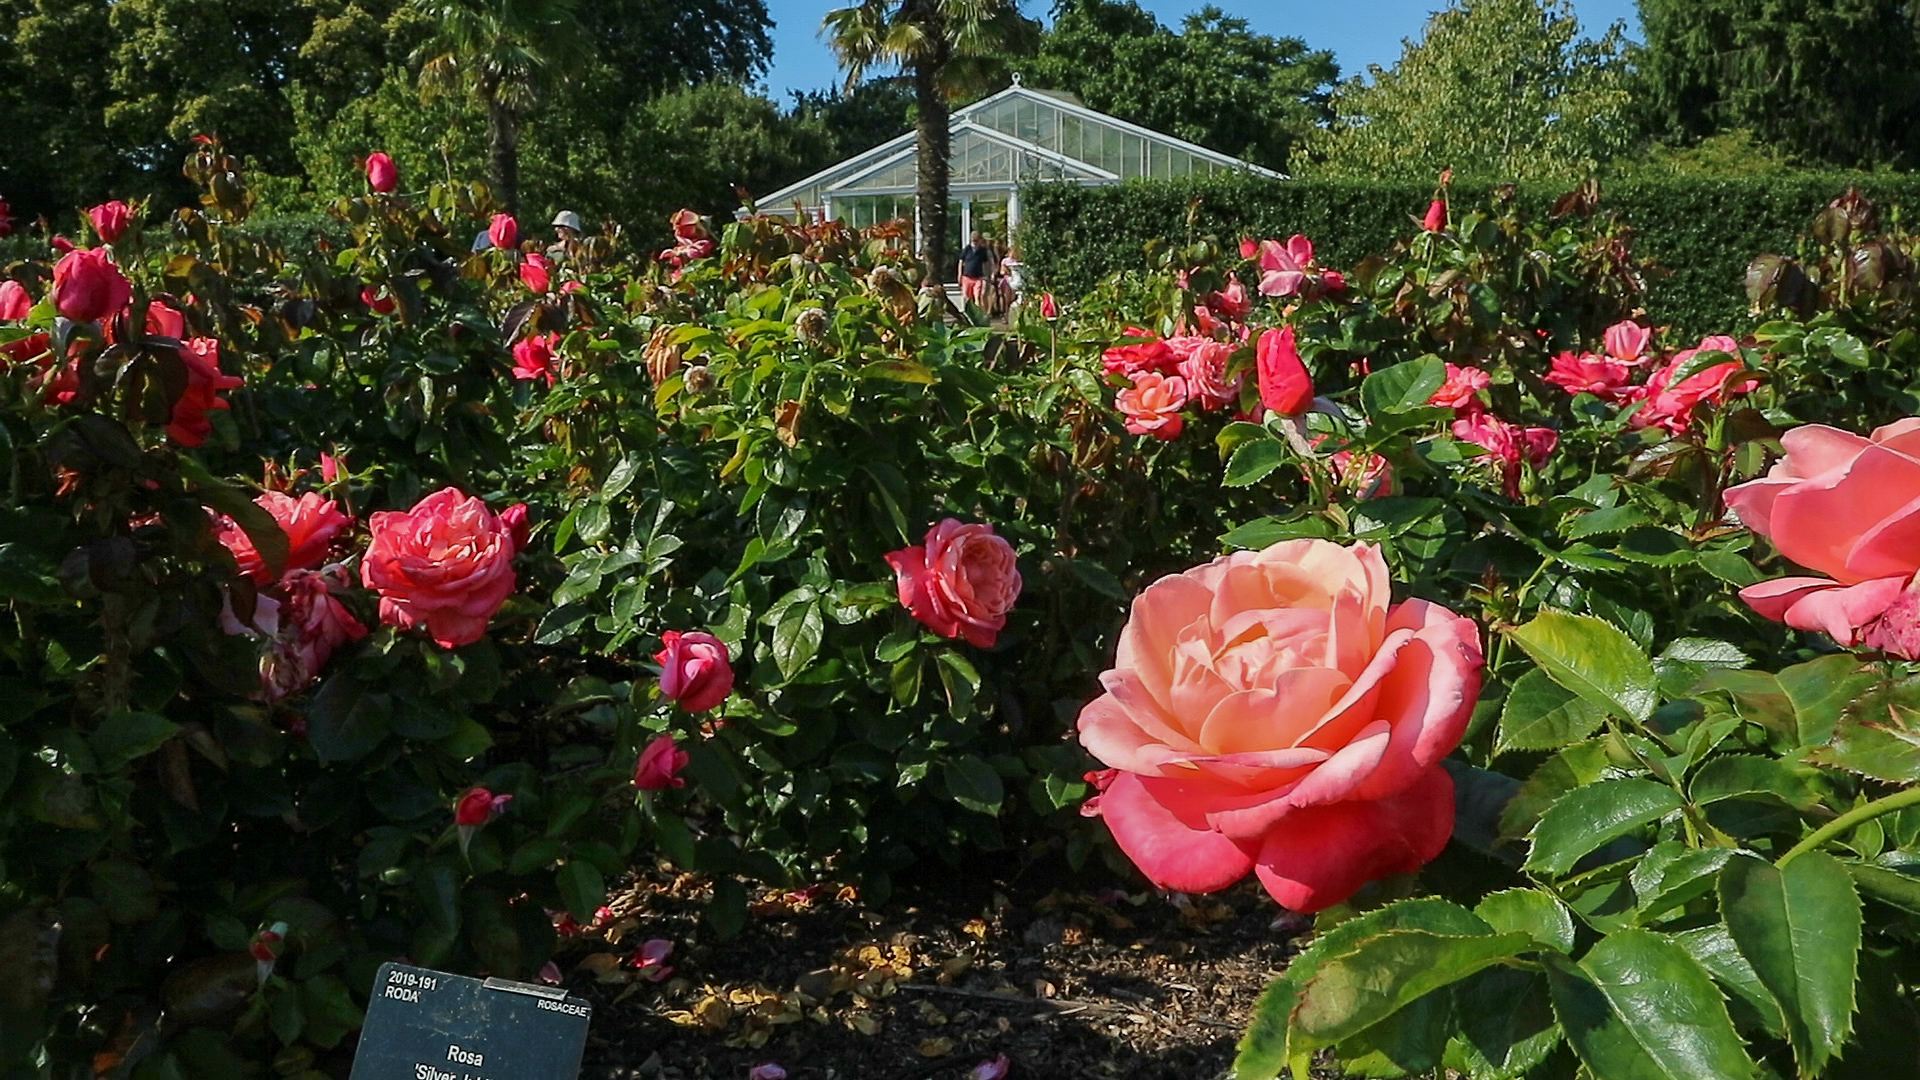 Many blossomed red roses at Kew gardens with the water Lilly house at the background